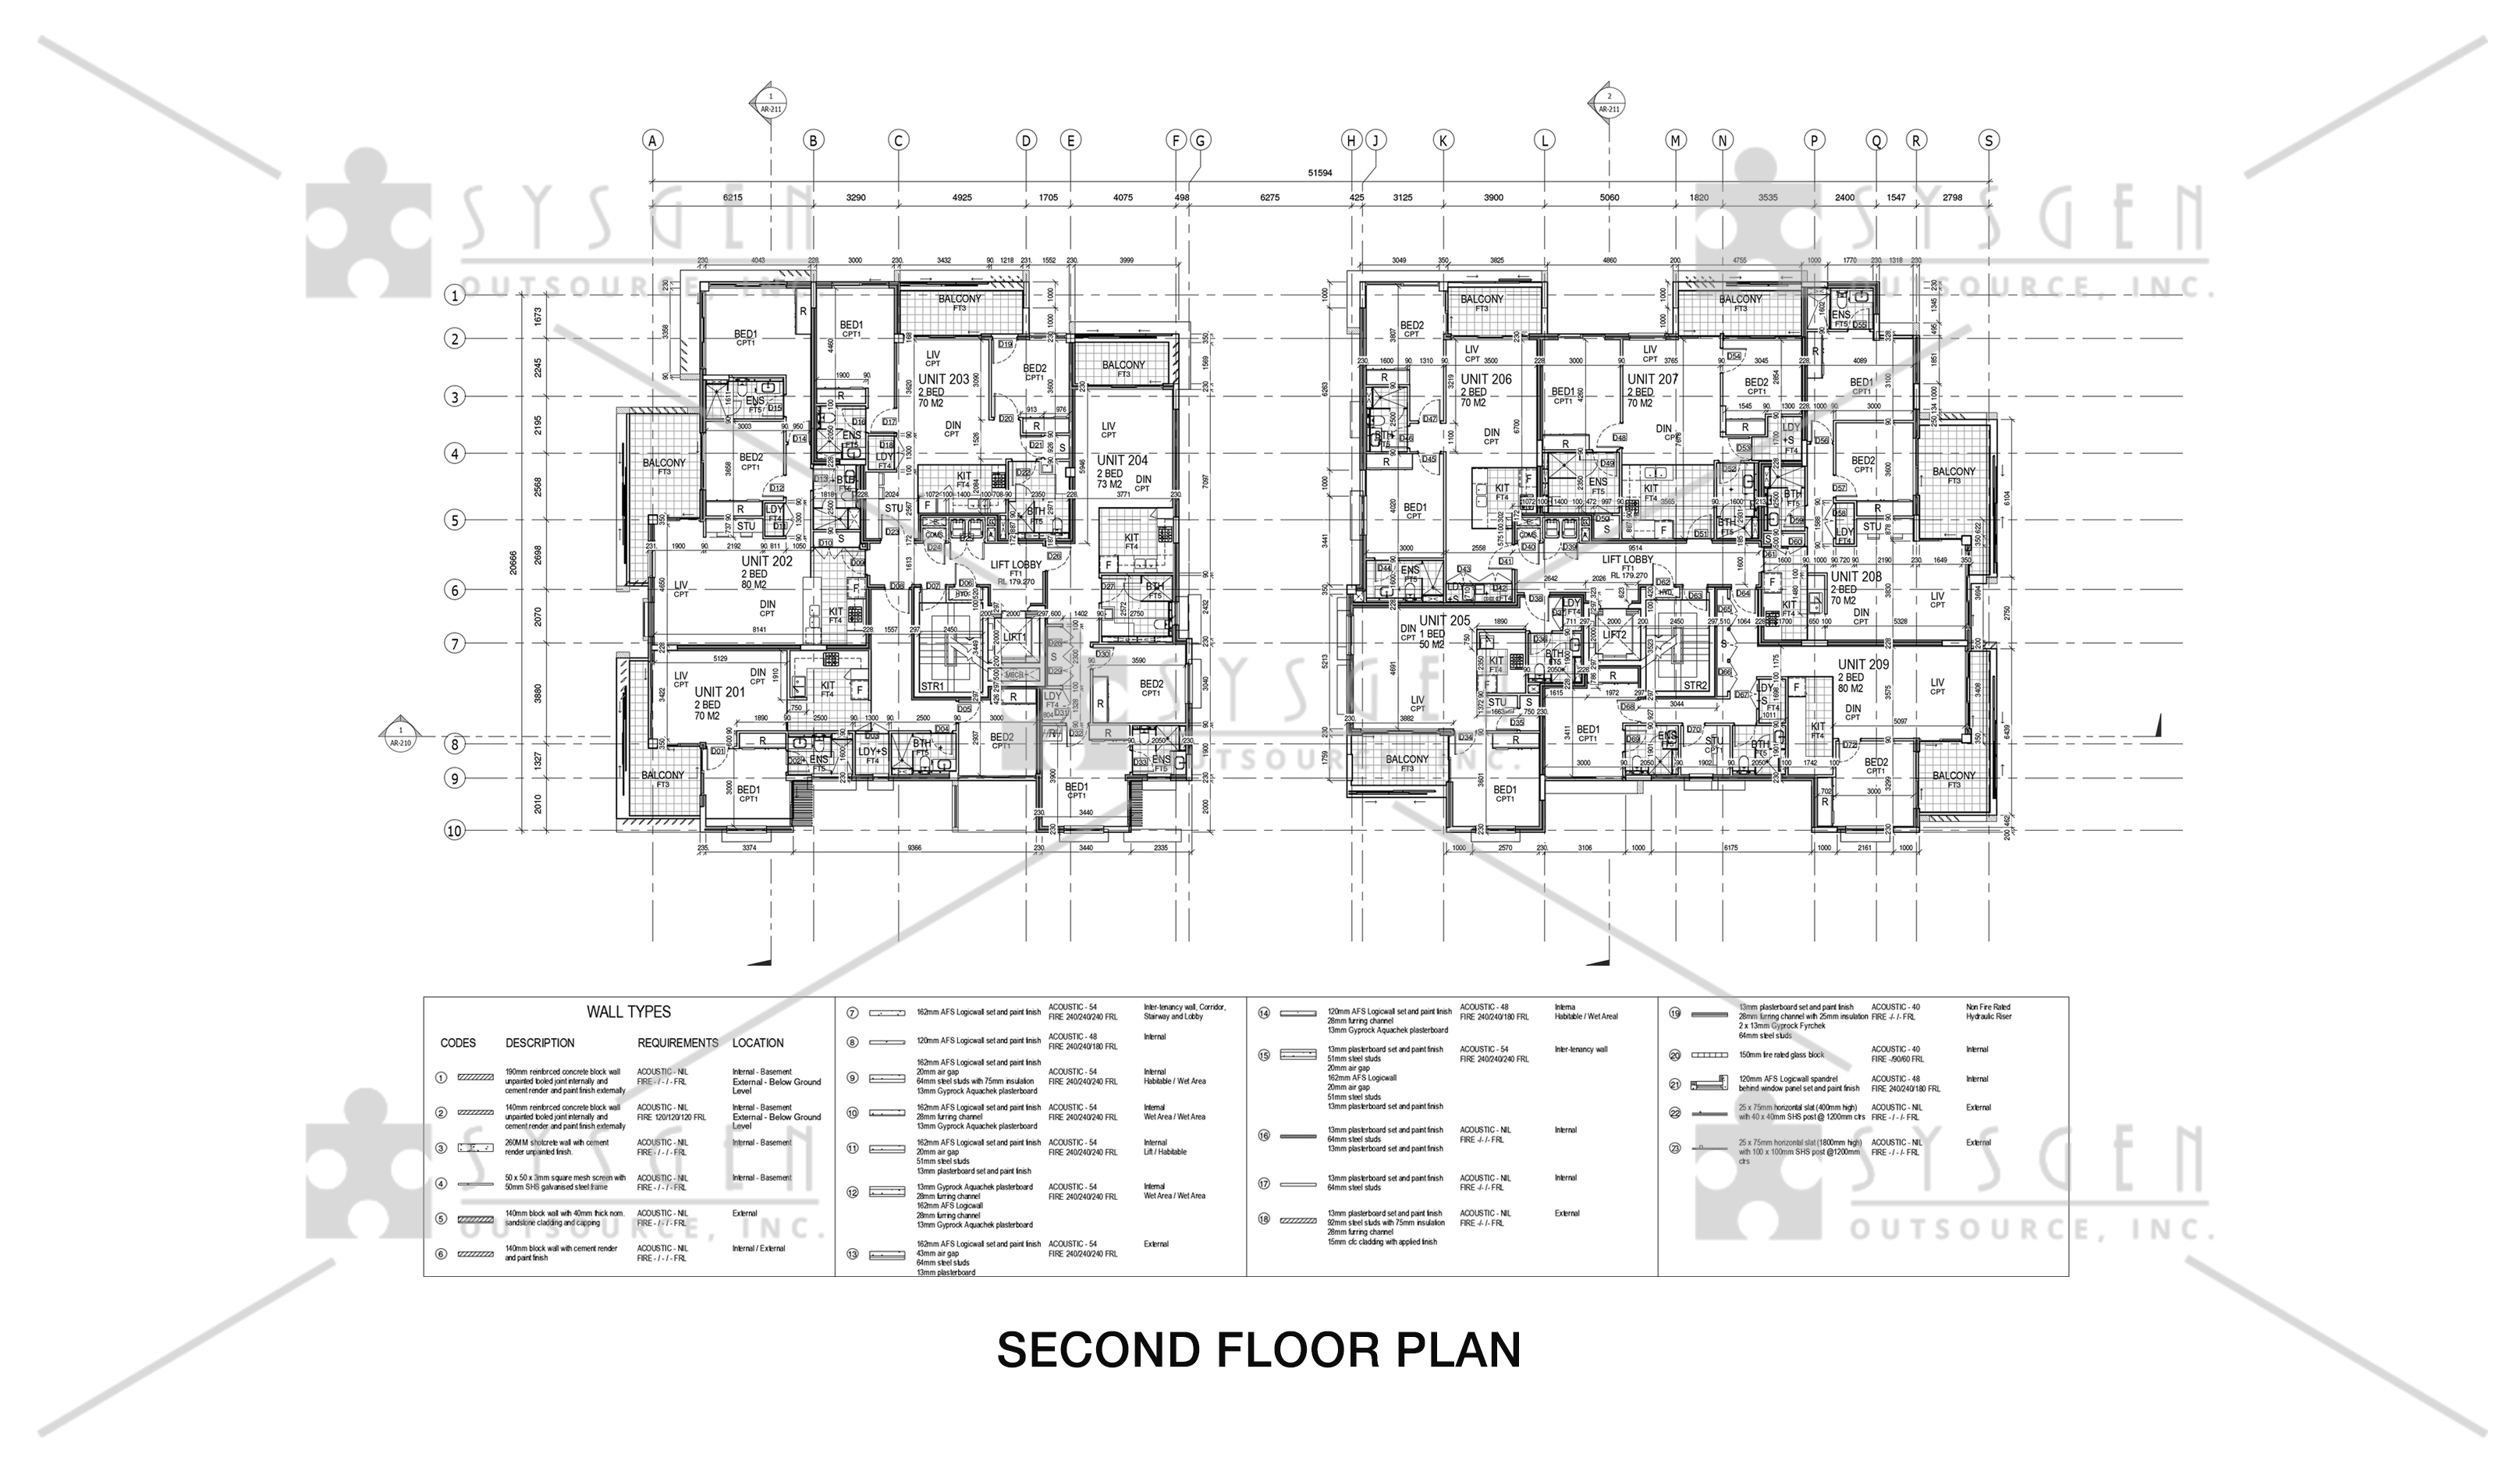 sysgen-outsource-cad-outsourcing-services-cad-conversion-revit-4-storey-residential6